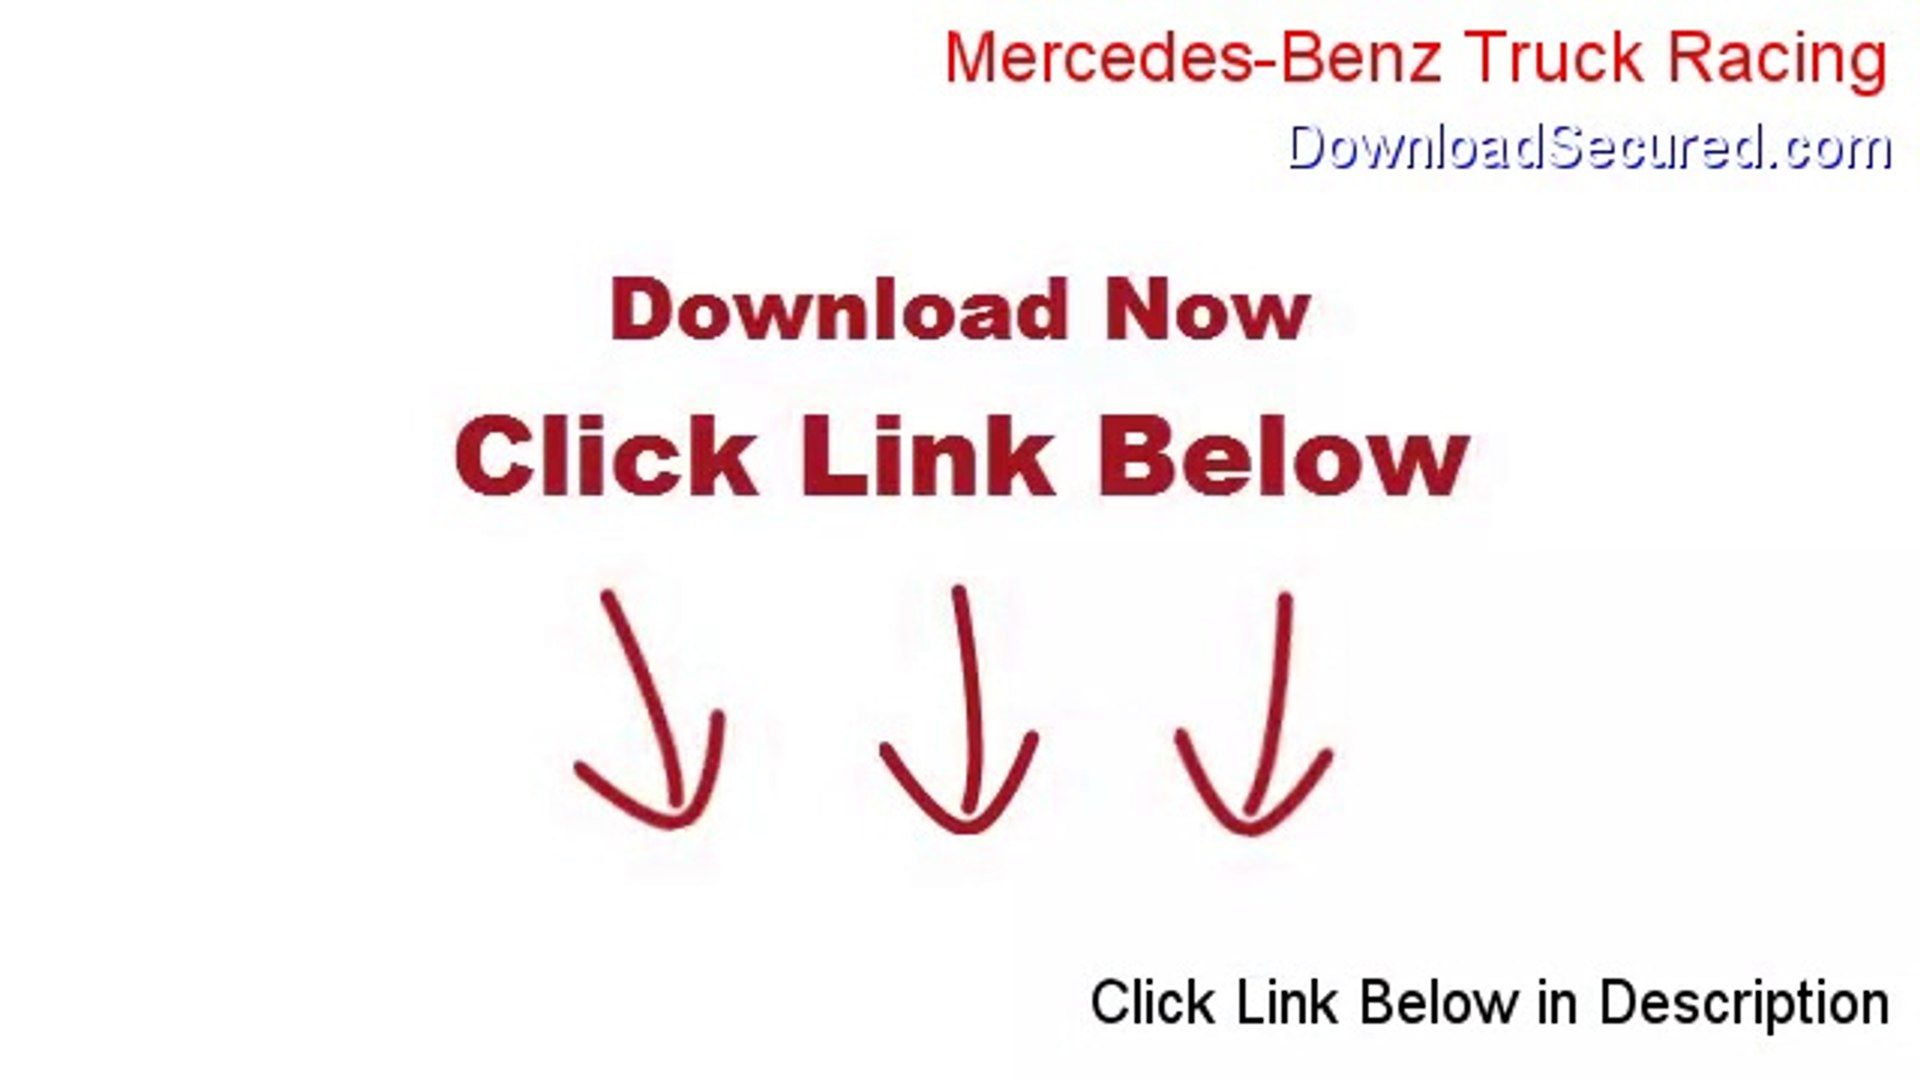 Mercedes-Benz Truck Racing Download (mercedes benz truck racing youtube 2014)